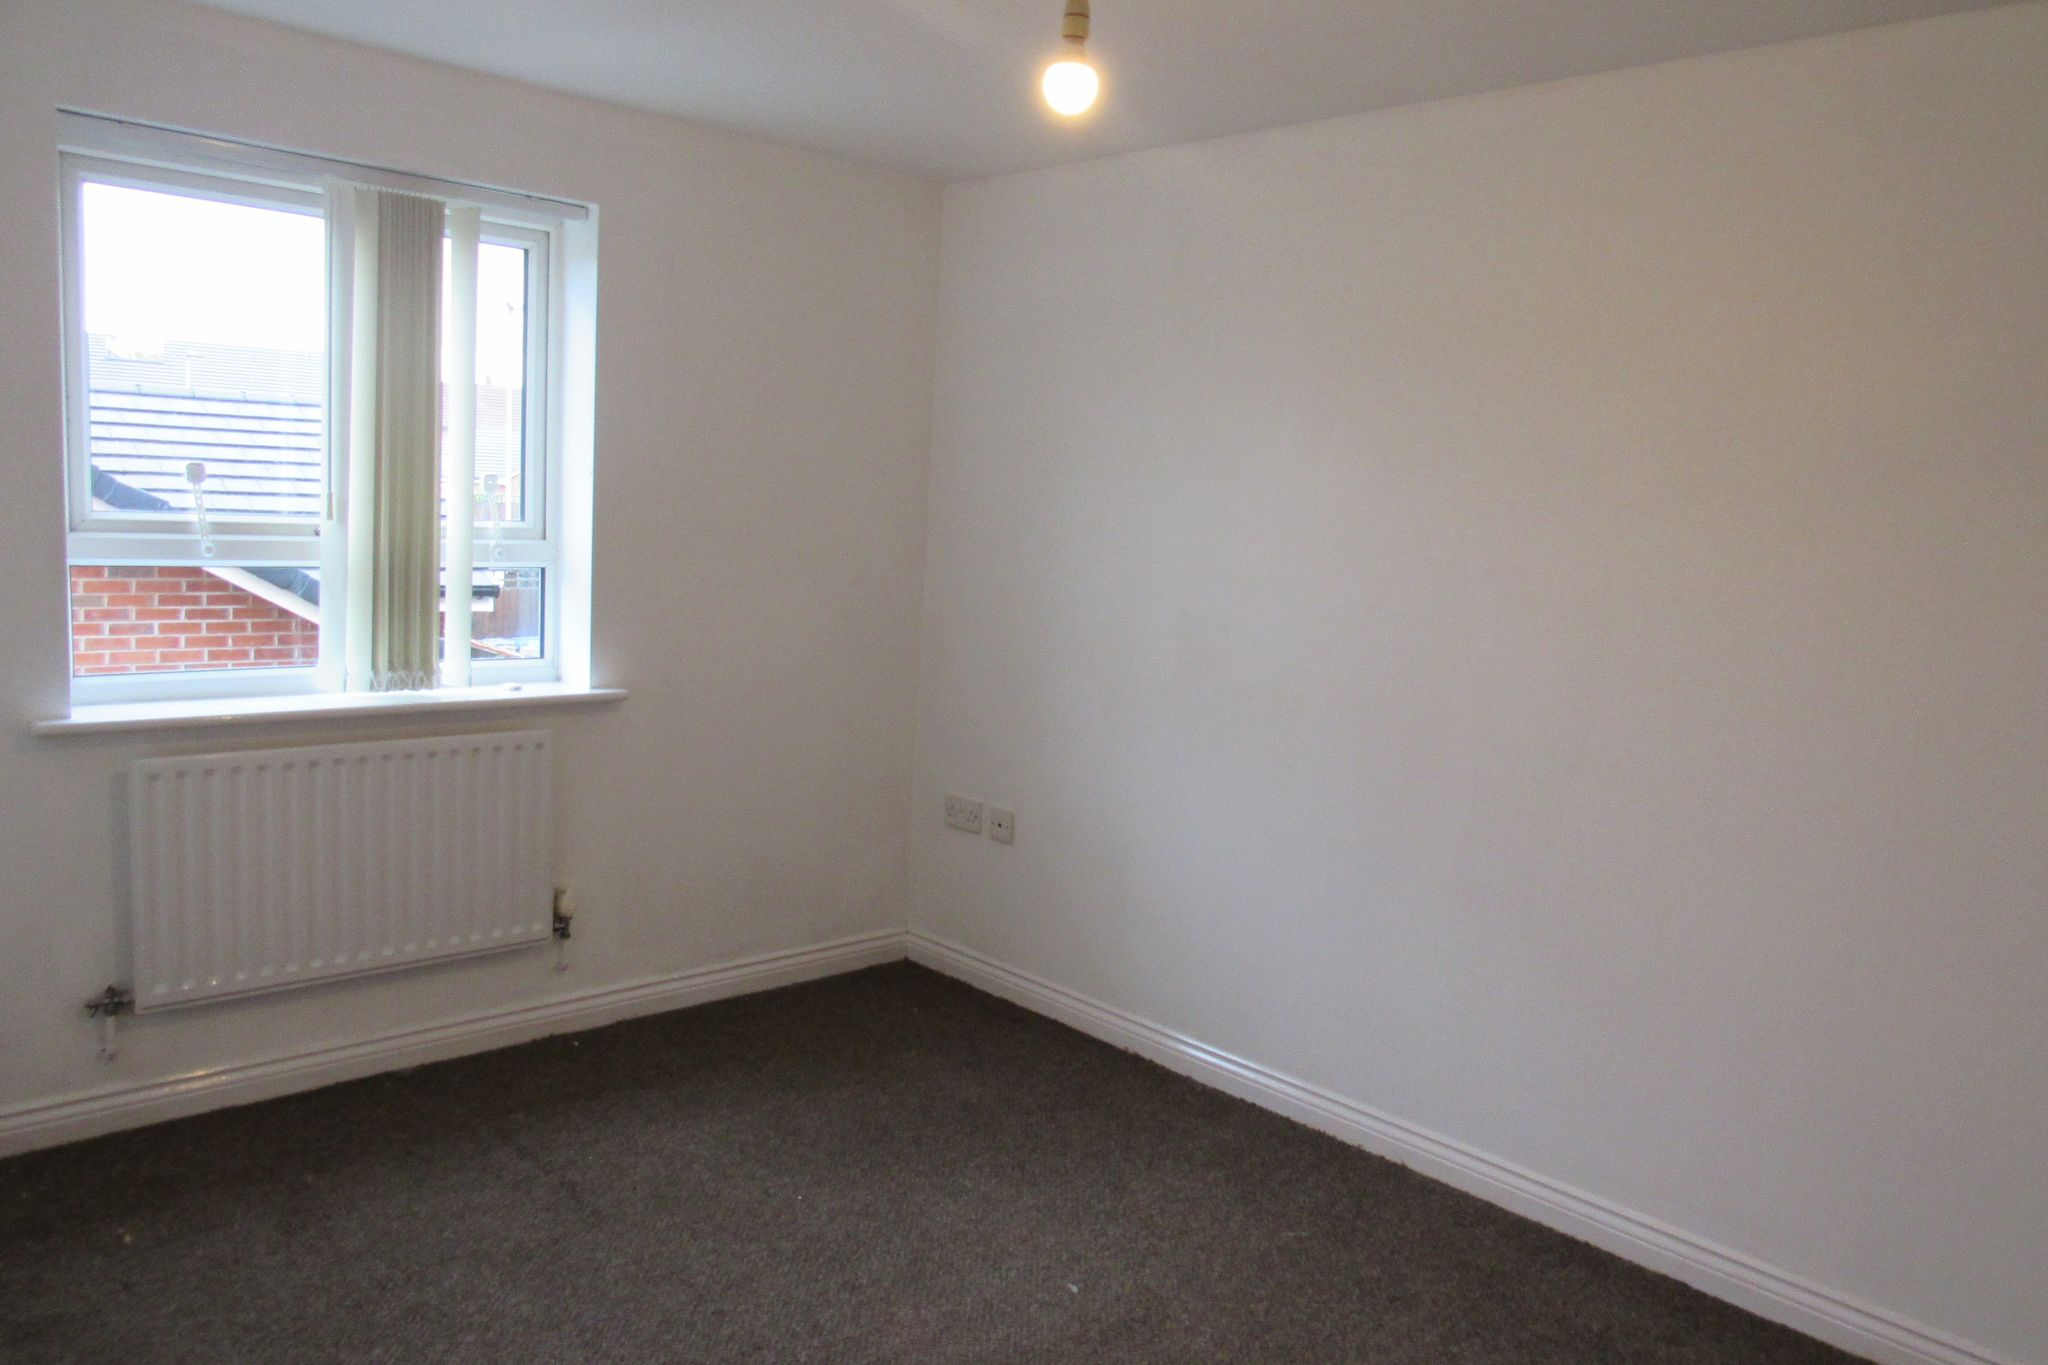 2 bedroom apartment flat/apartment SSTC in Manchester - Photograph 7.